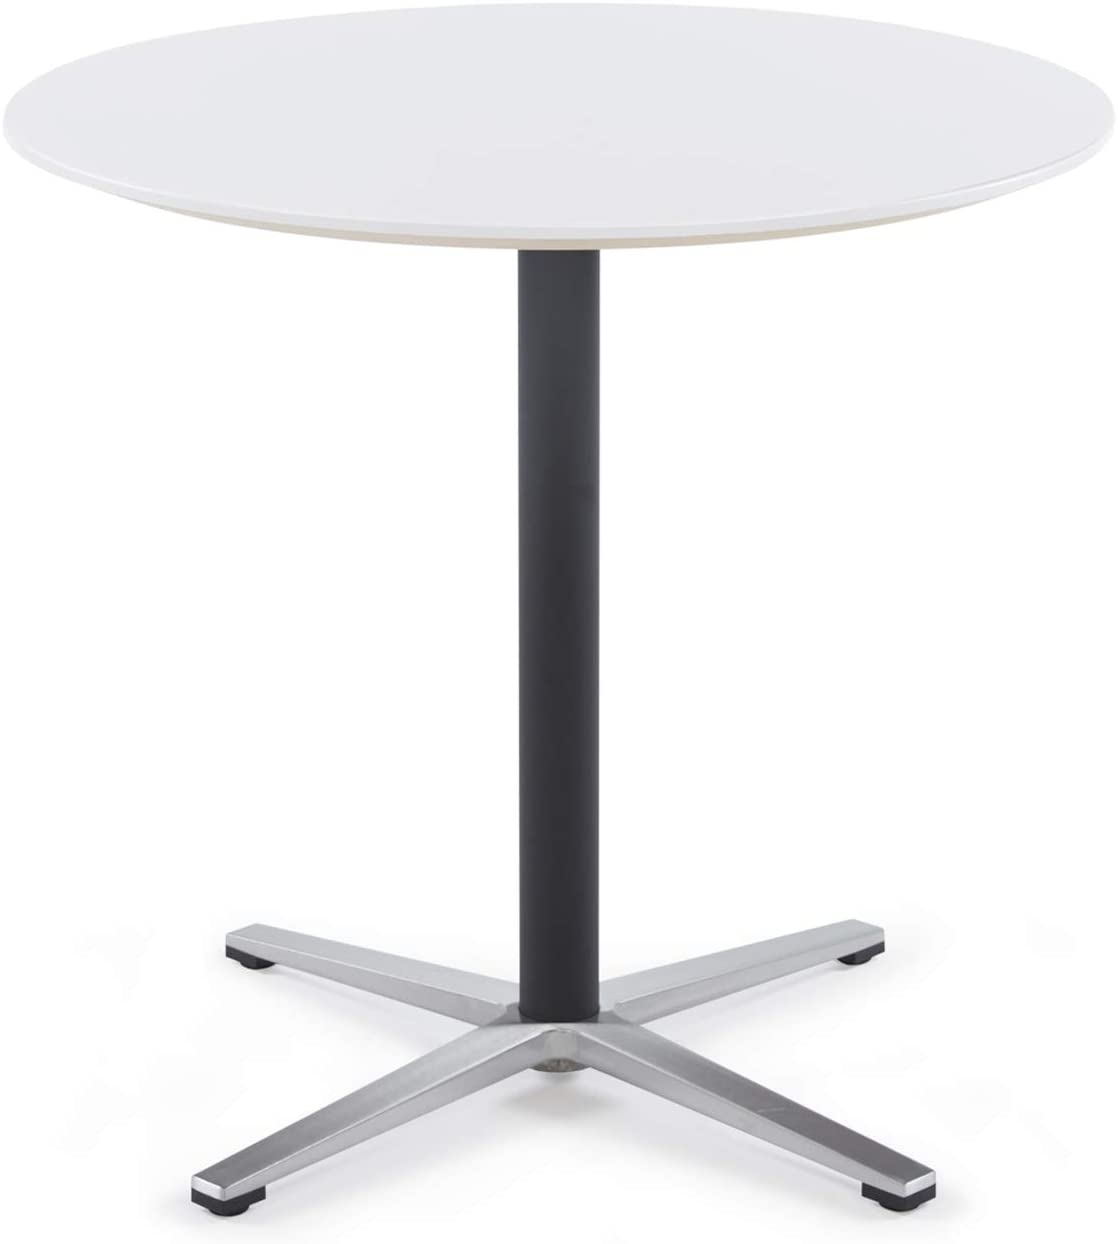 Amazon Com Sunon Round Bistro Table Small Round Table With X Style Pedestal For Pub Table Cafe Table Office Table Cocktail Table Moon White 30 Inch Height Kitchen Dining